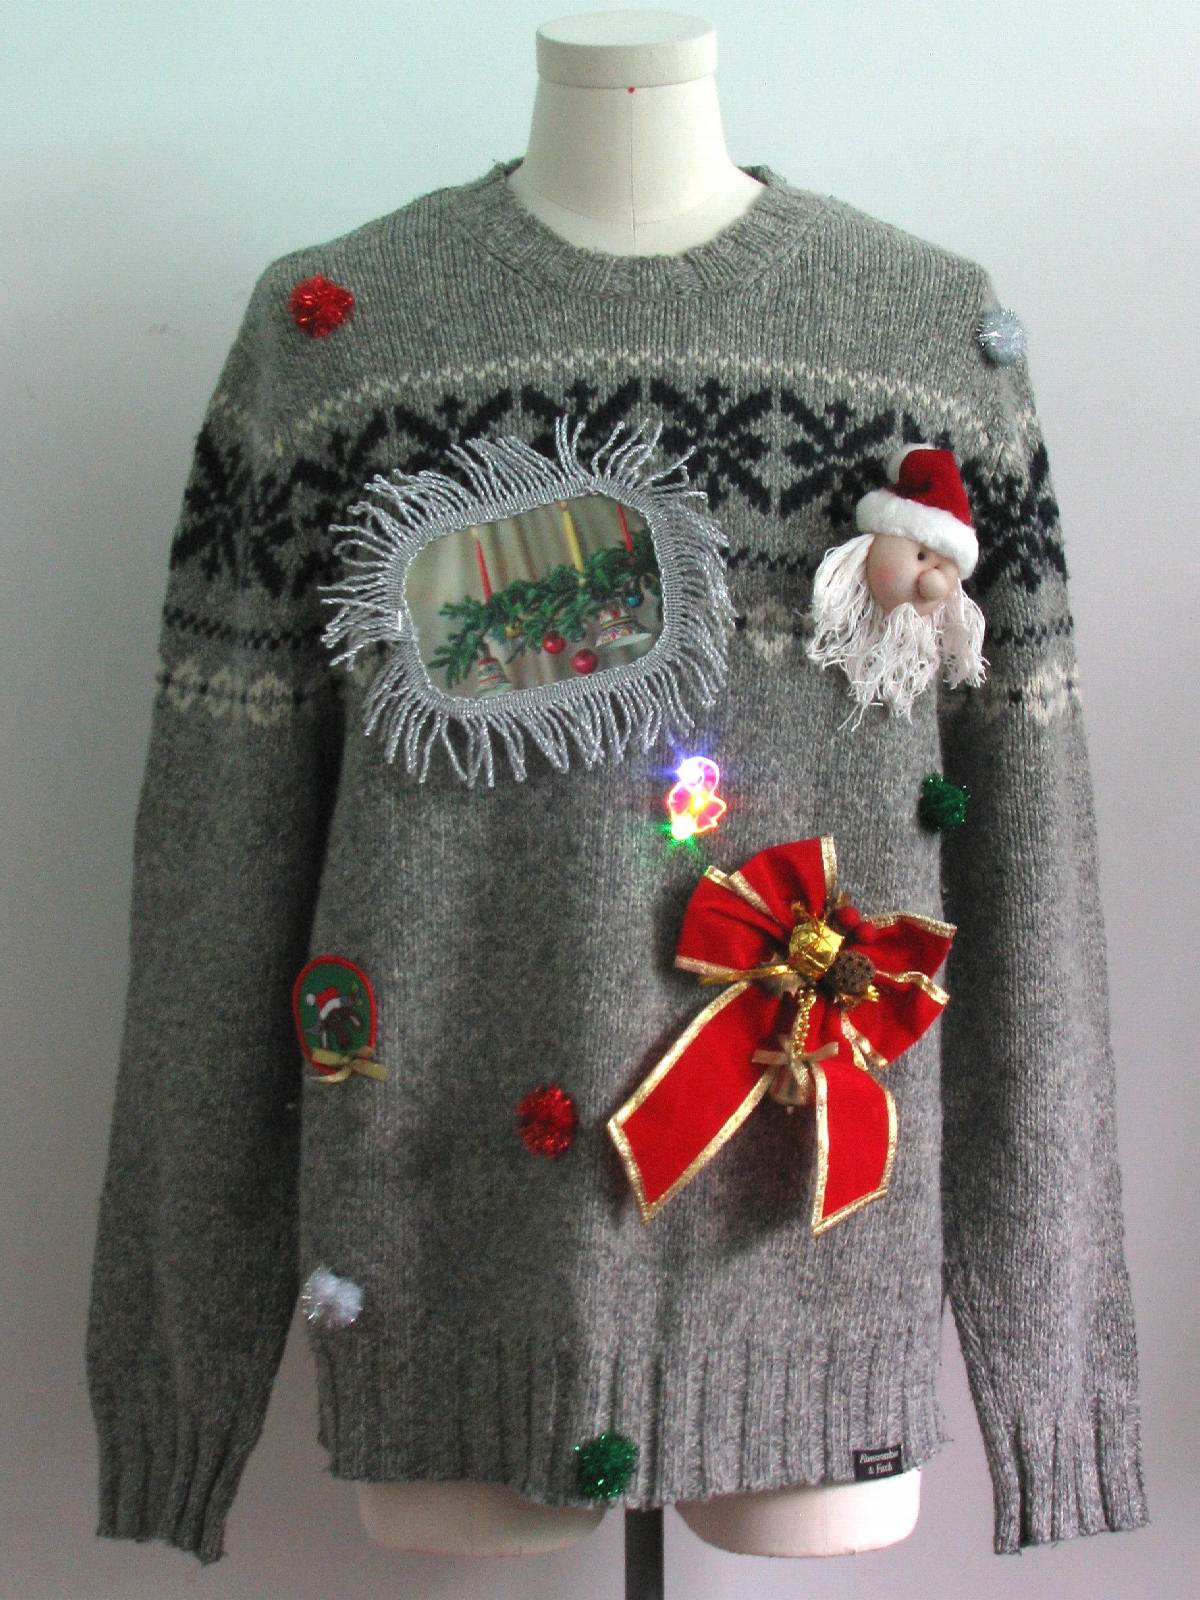 Mens Hand Embellished Ugly Christmas Sweater: -Abercrombie and Fitch- Mens gr...